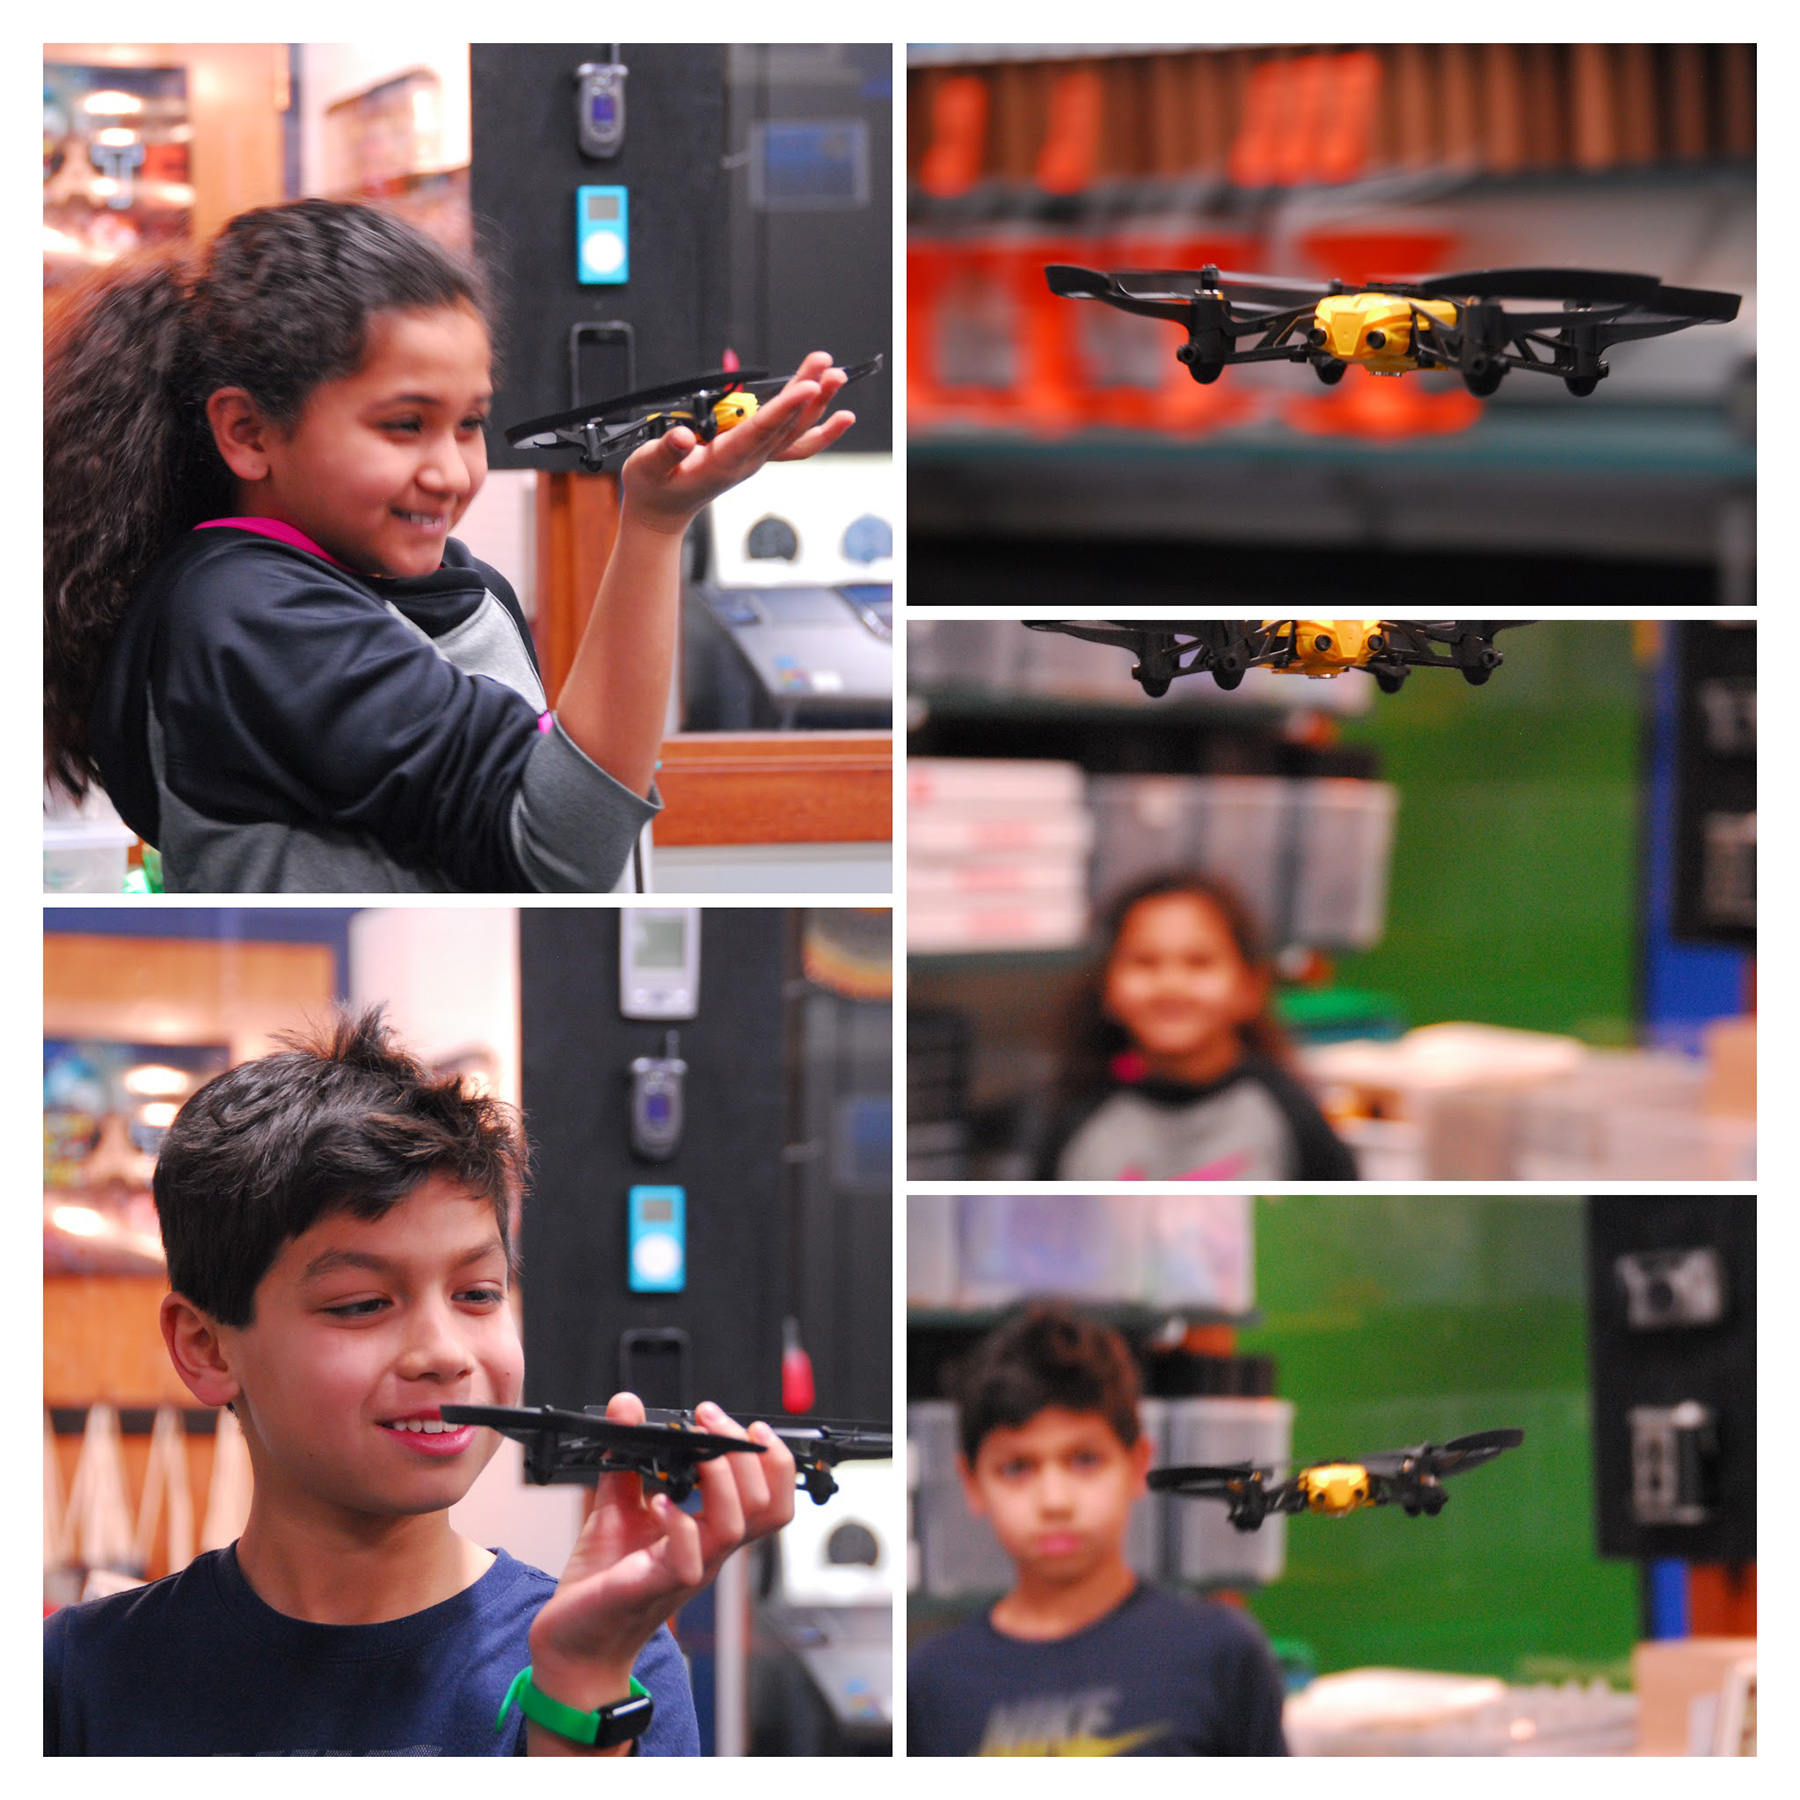 Build Coding Skills With Drones for Children